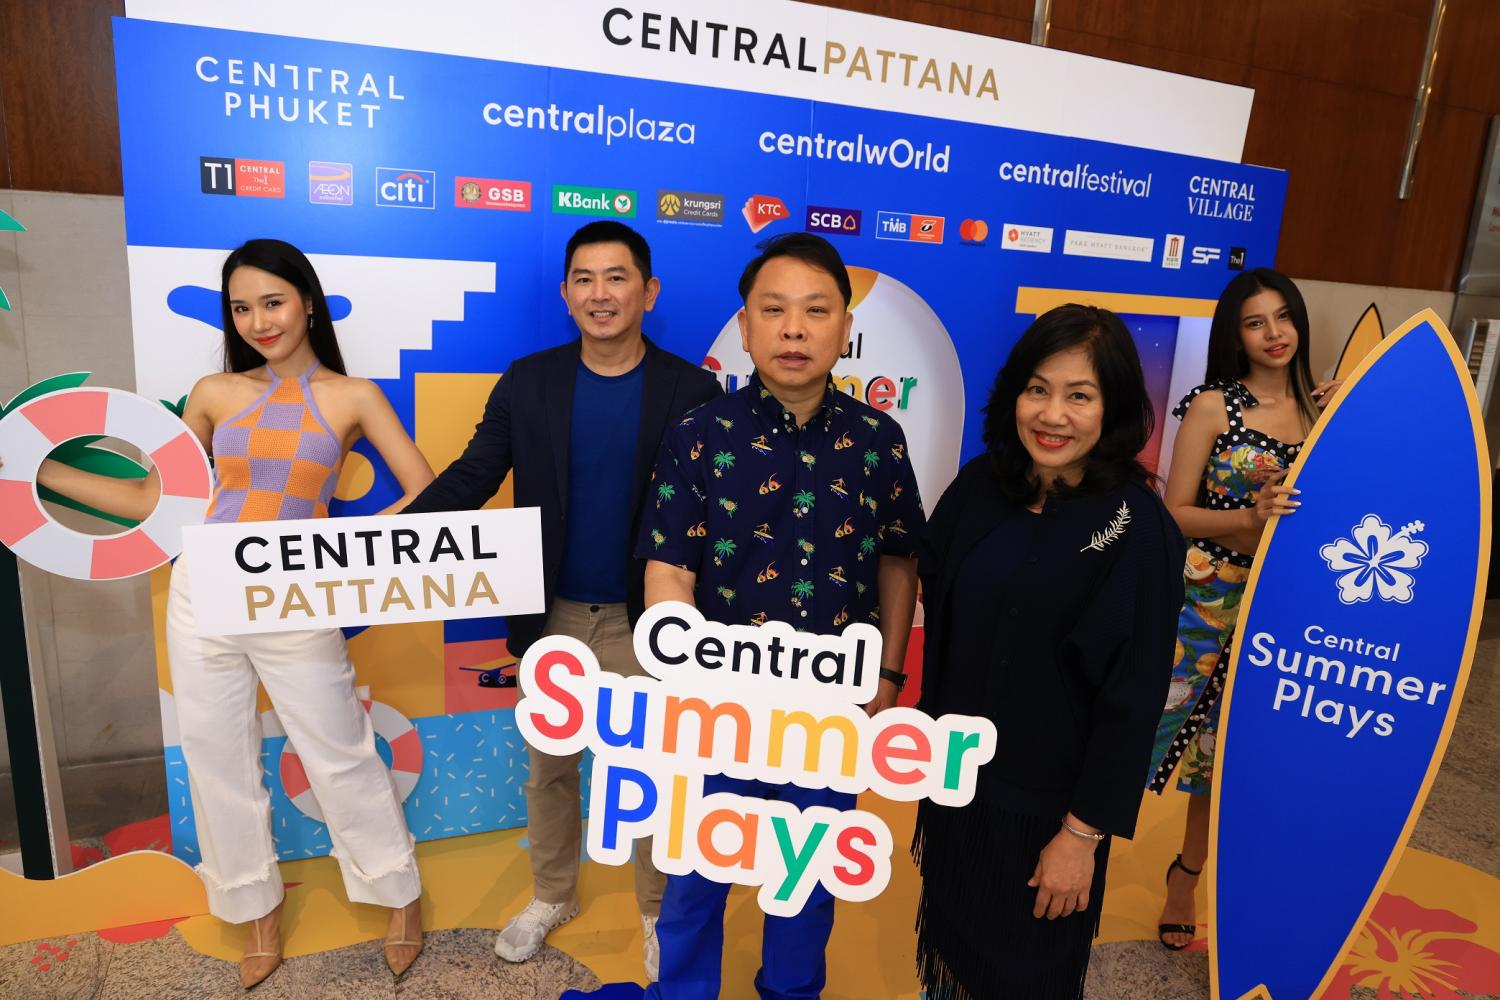 Central Pattana has invested 180 million baht in its 'Central Summer Plays' campaign. More than 450 entrepreneurs will join the Thailand Travel & Lifestyle Fair events that will run from today until May 4.